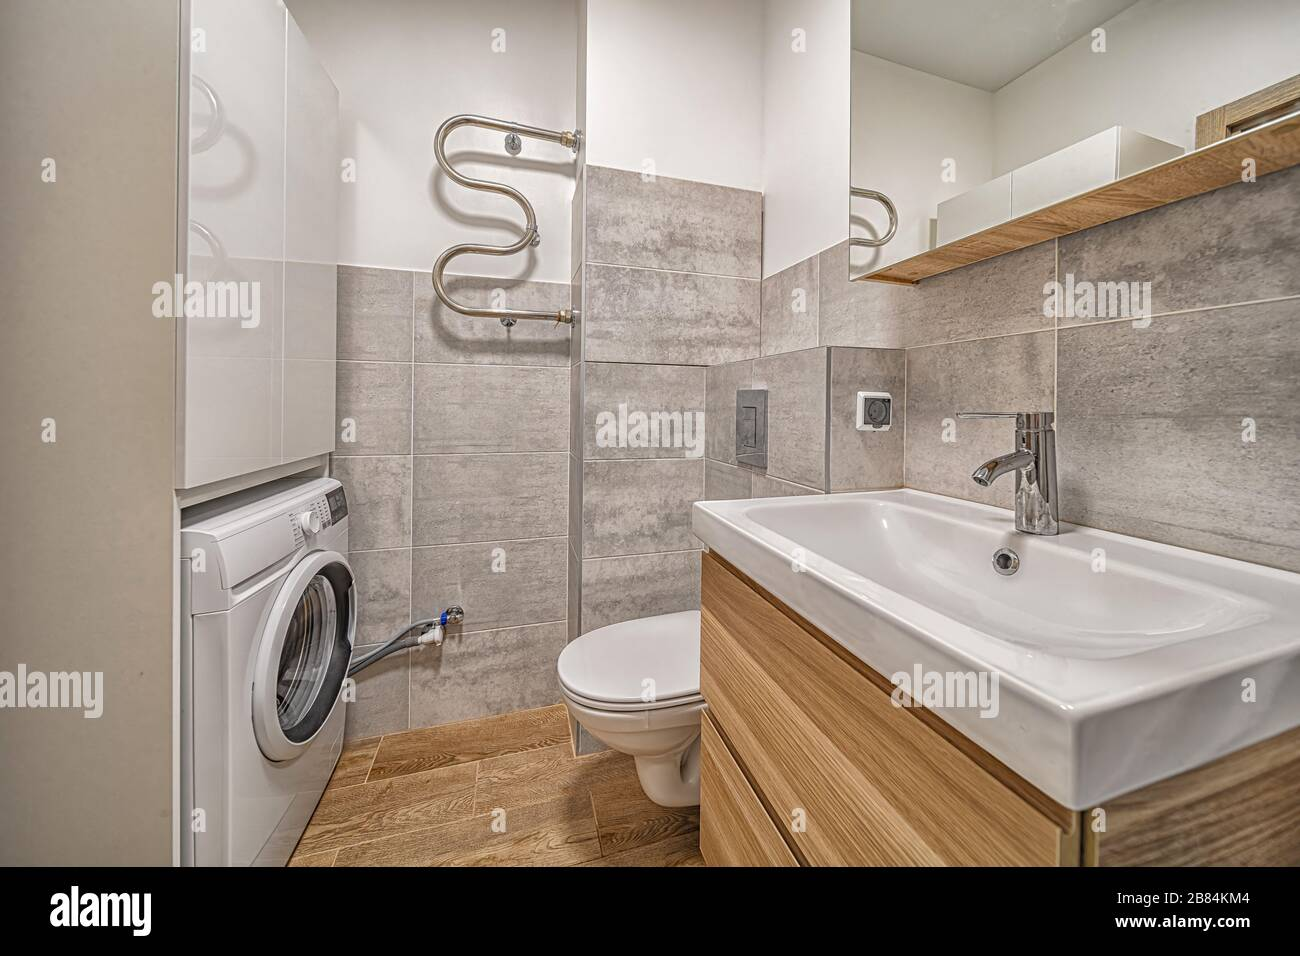 Tiny Modern Bathroom With Toilet Sink Mirror Washing Machine And Cabinet Contemporary Interior Design Stock Photo Alamy